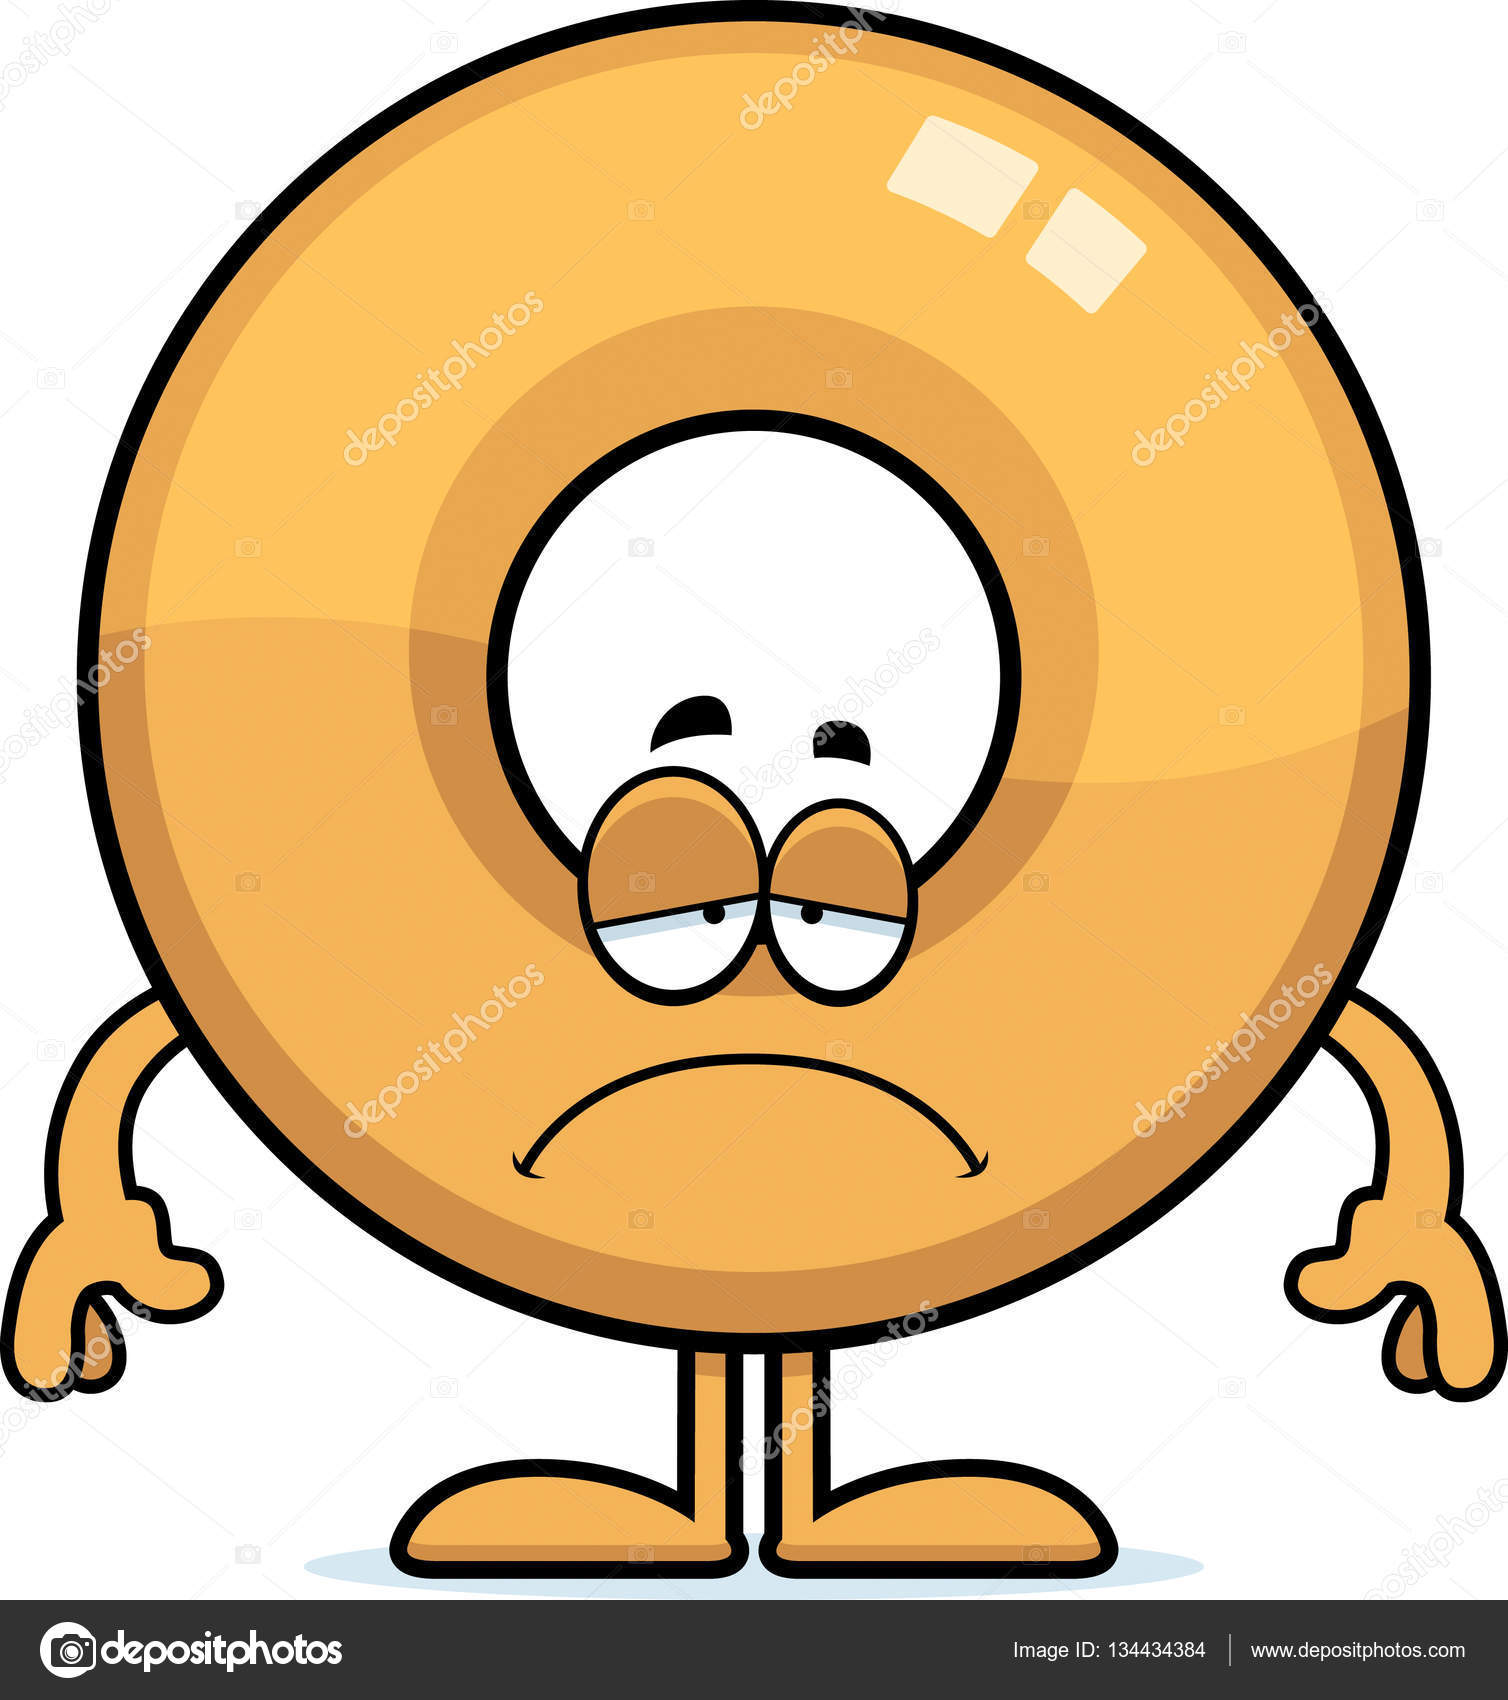 Sad Cartoon Doughnut Stock Vector C Cthoman 134434384